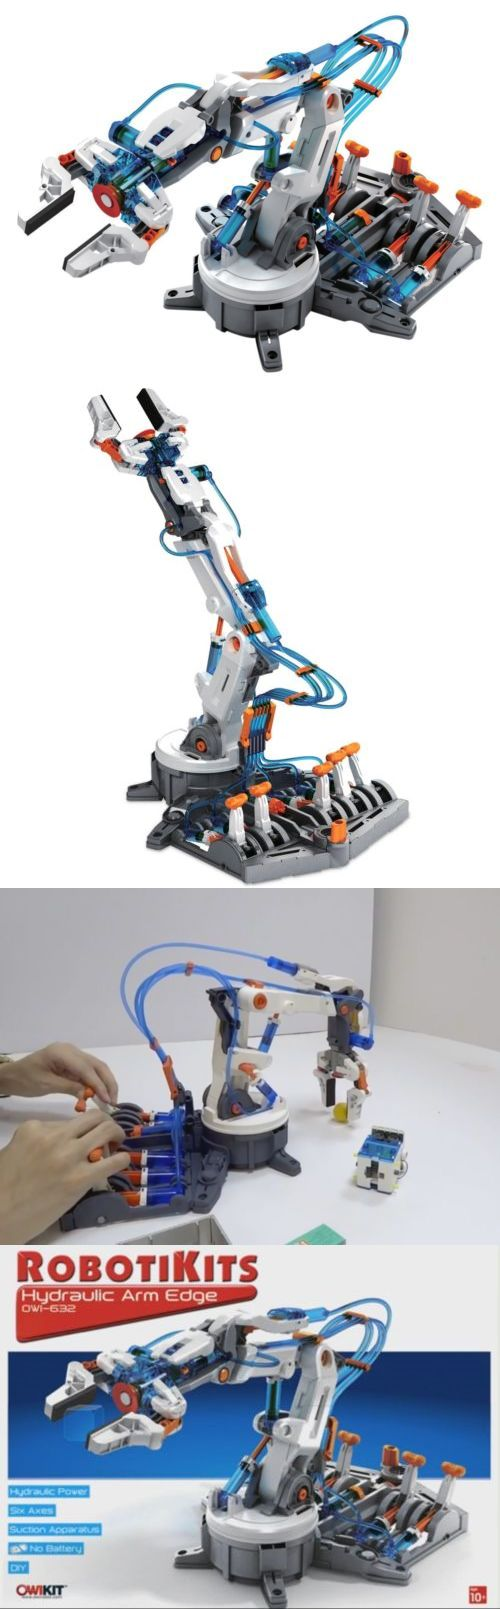 Other Science and Nature Toys 11737: Hydraulic Arm Edge Kit Educational Robotics Science Logic Skills Technology Toys -> BUY IT NOW ONLY: $53.99 on eBay!